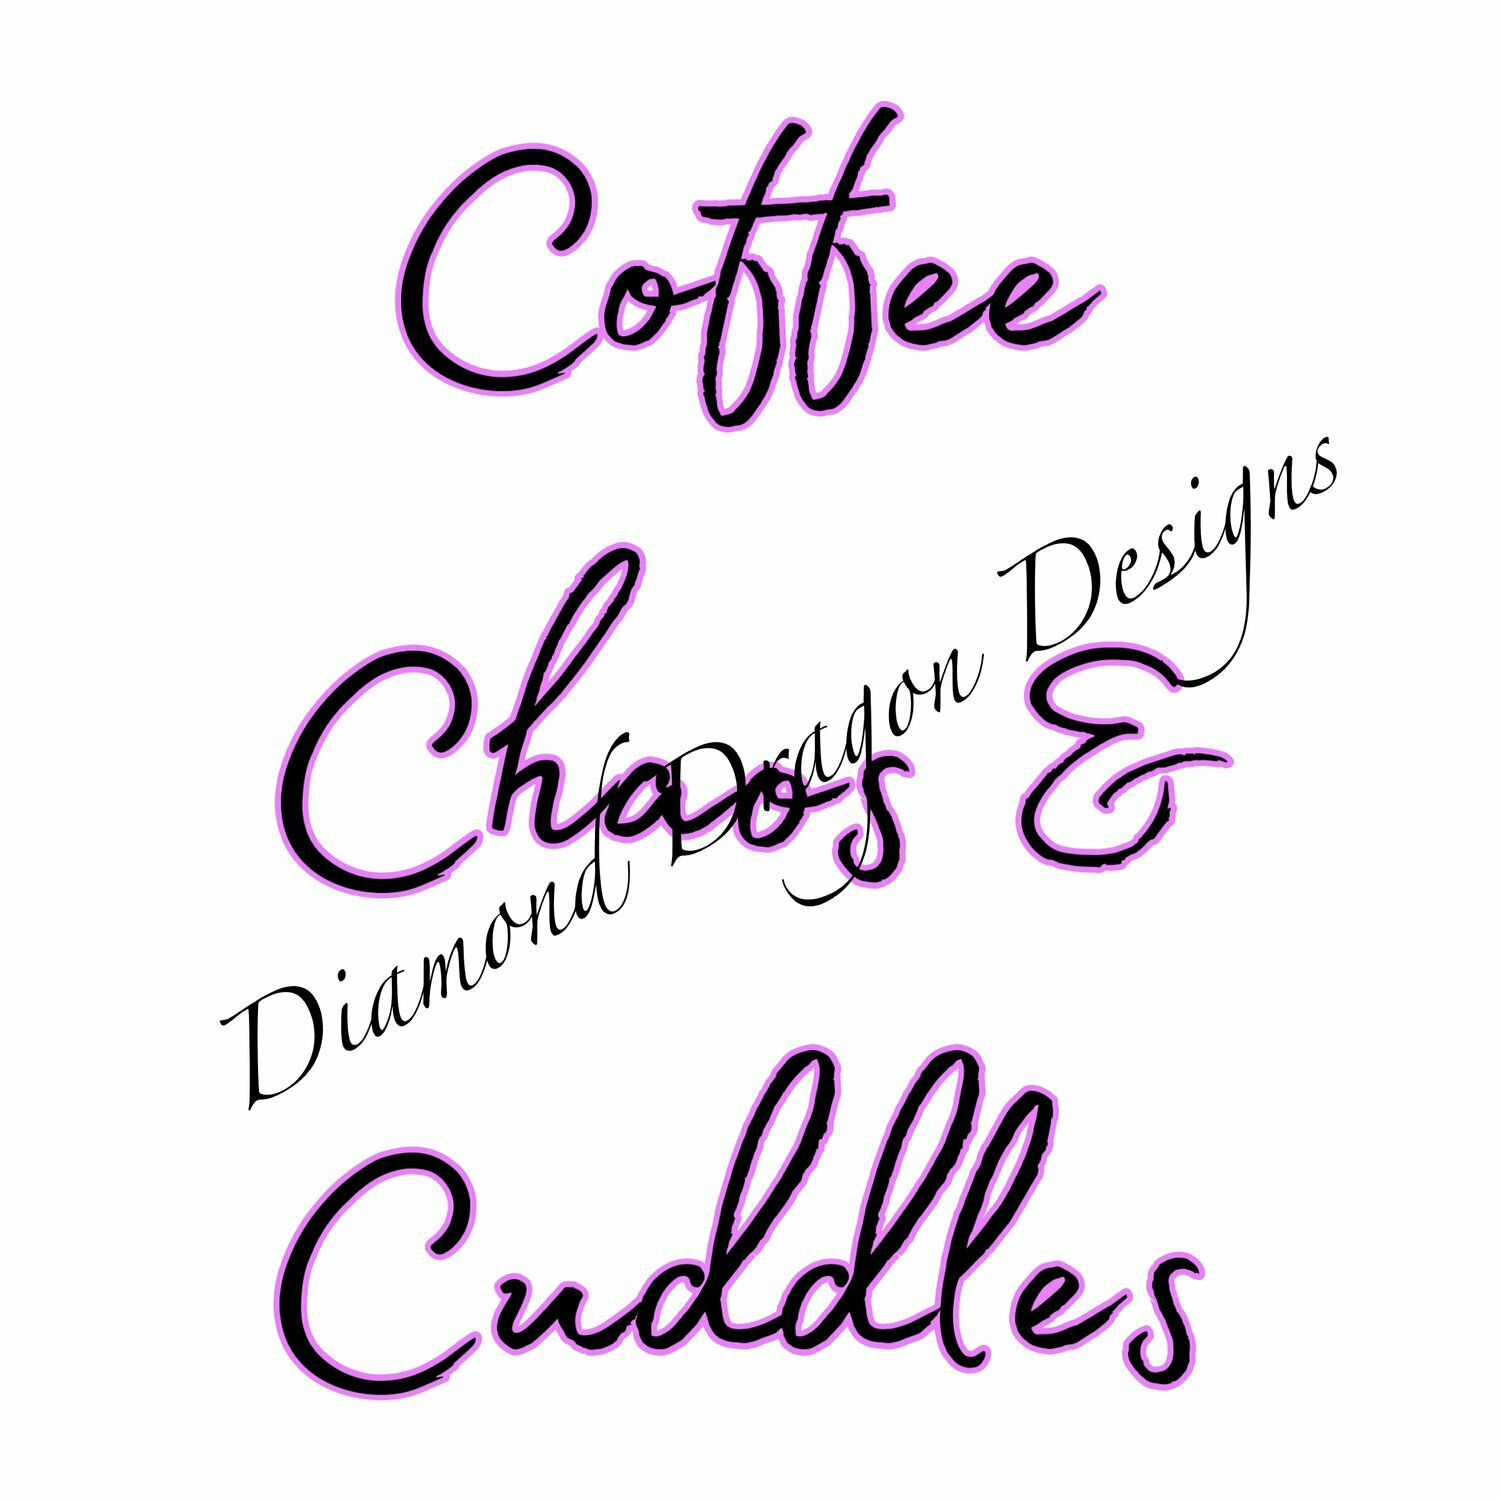 Coffee - Coffee Chaos & Cuddles, Quote, Coffee, Mom, Mother's, Mother's Day, Digital Image  3 Styles,